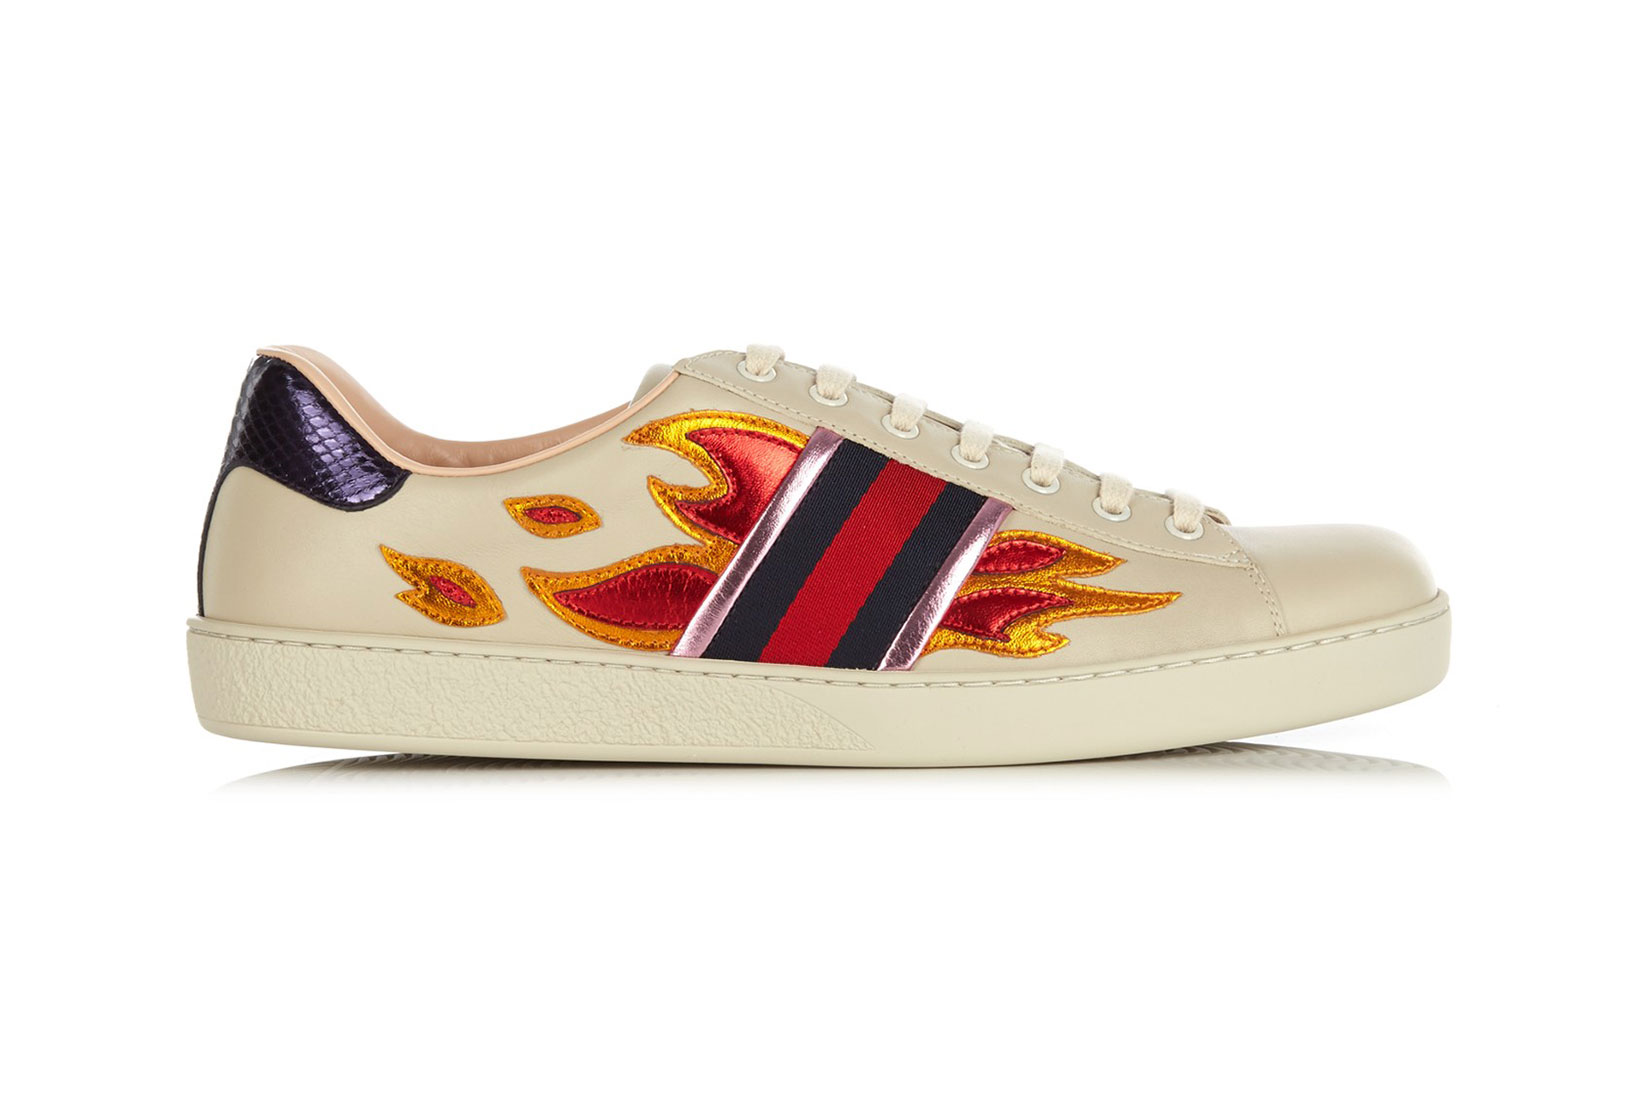 Gucci Gets Fiery With These New Metallic Flame Low Top Trainers